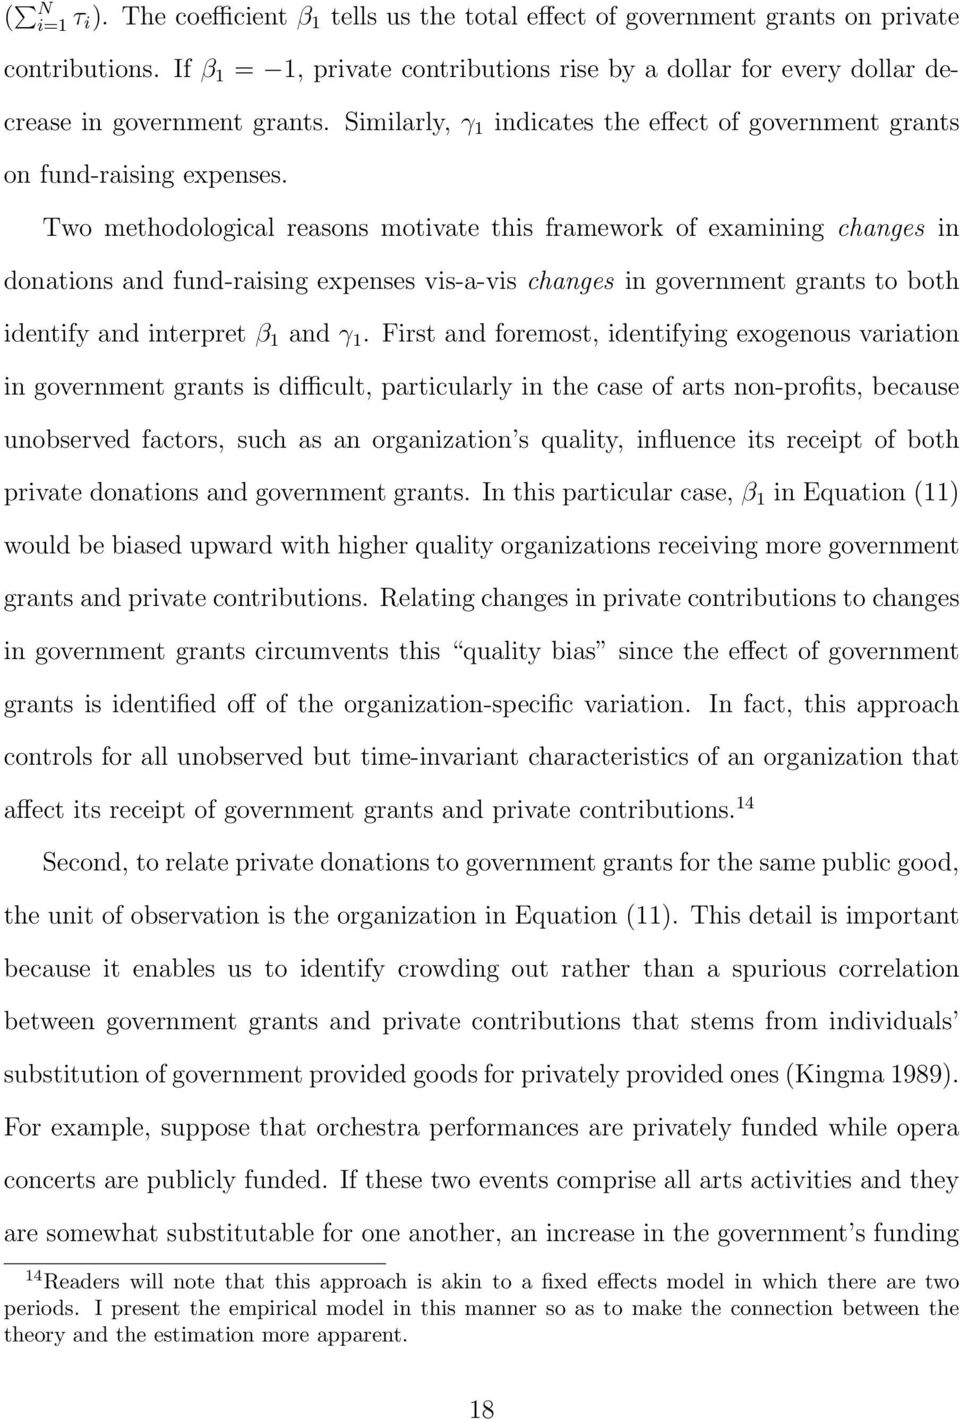 Two methodological reasons motivate this framework of examining changes in donations and fund-raising expenses vis-a-vis changes in government grants to both identify and interpret β 1 and γ 1.